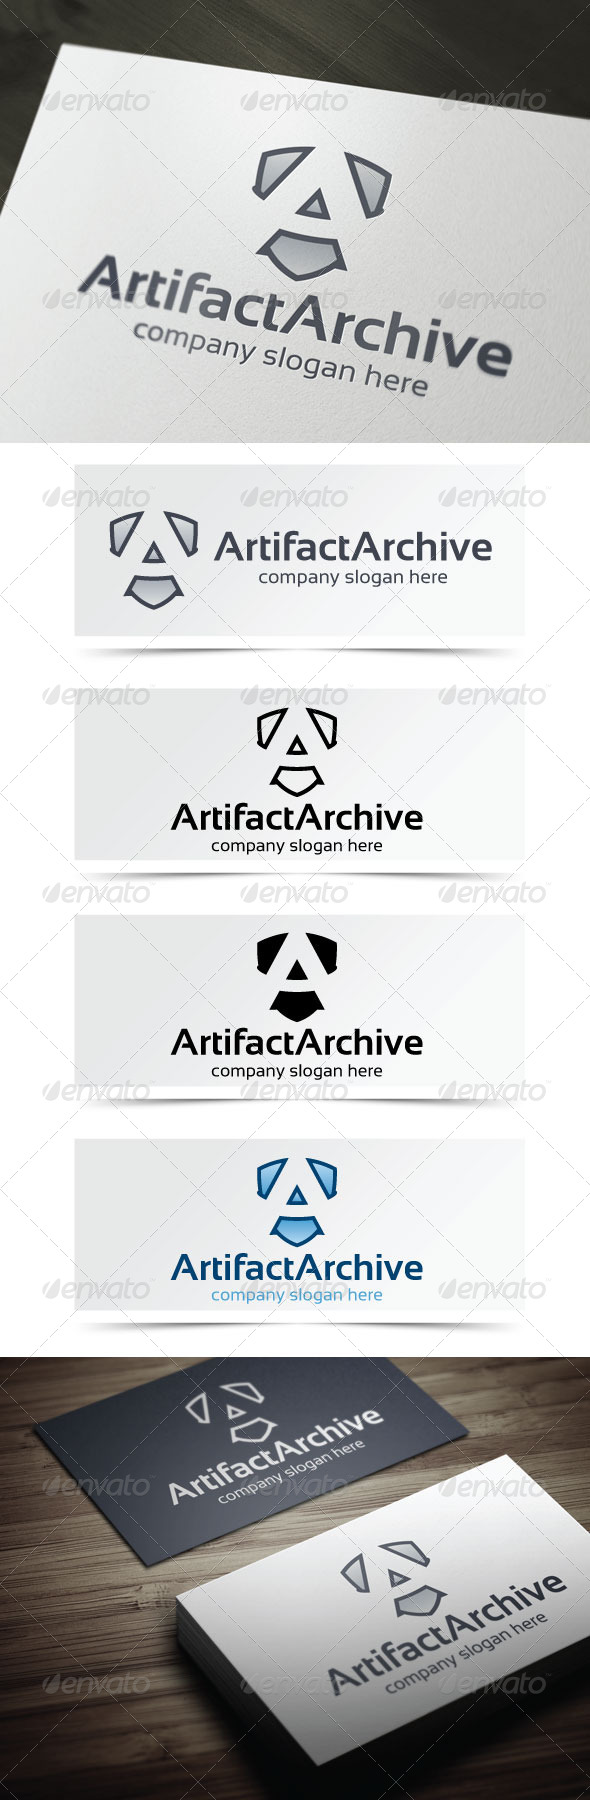 Artifact Archive - Letters Logo Templates